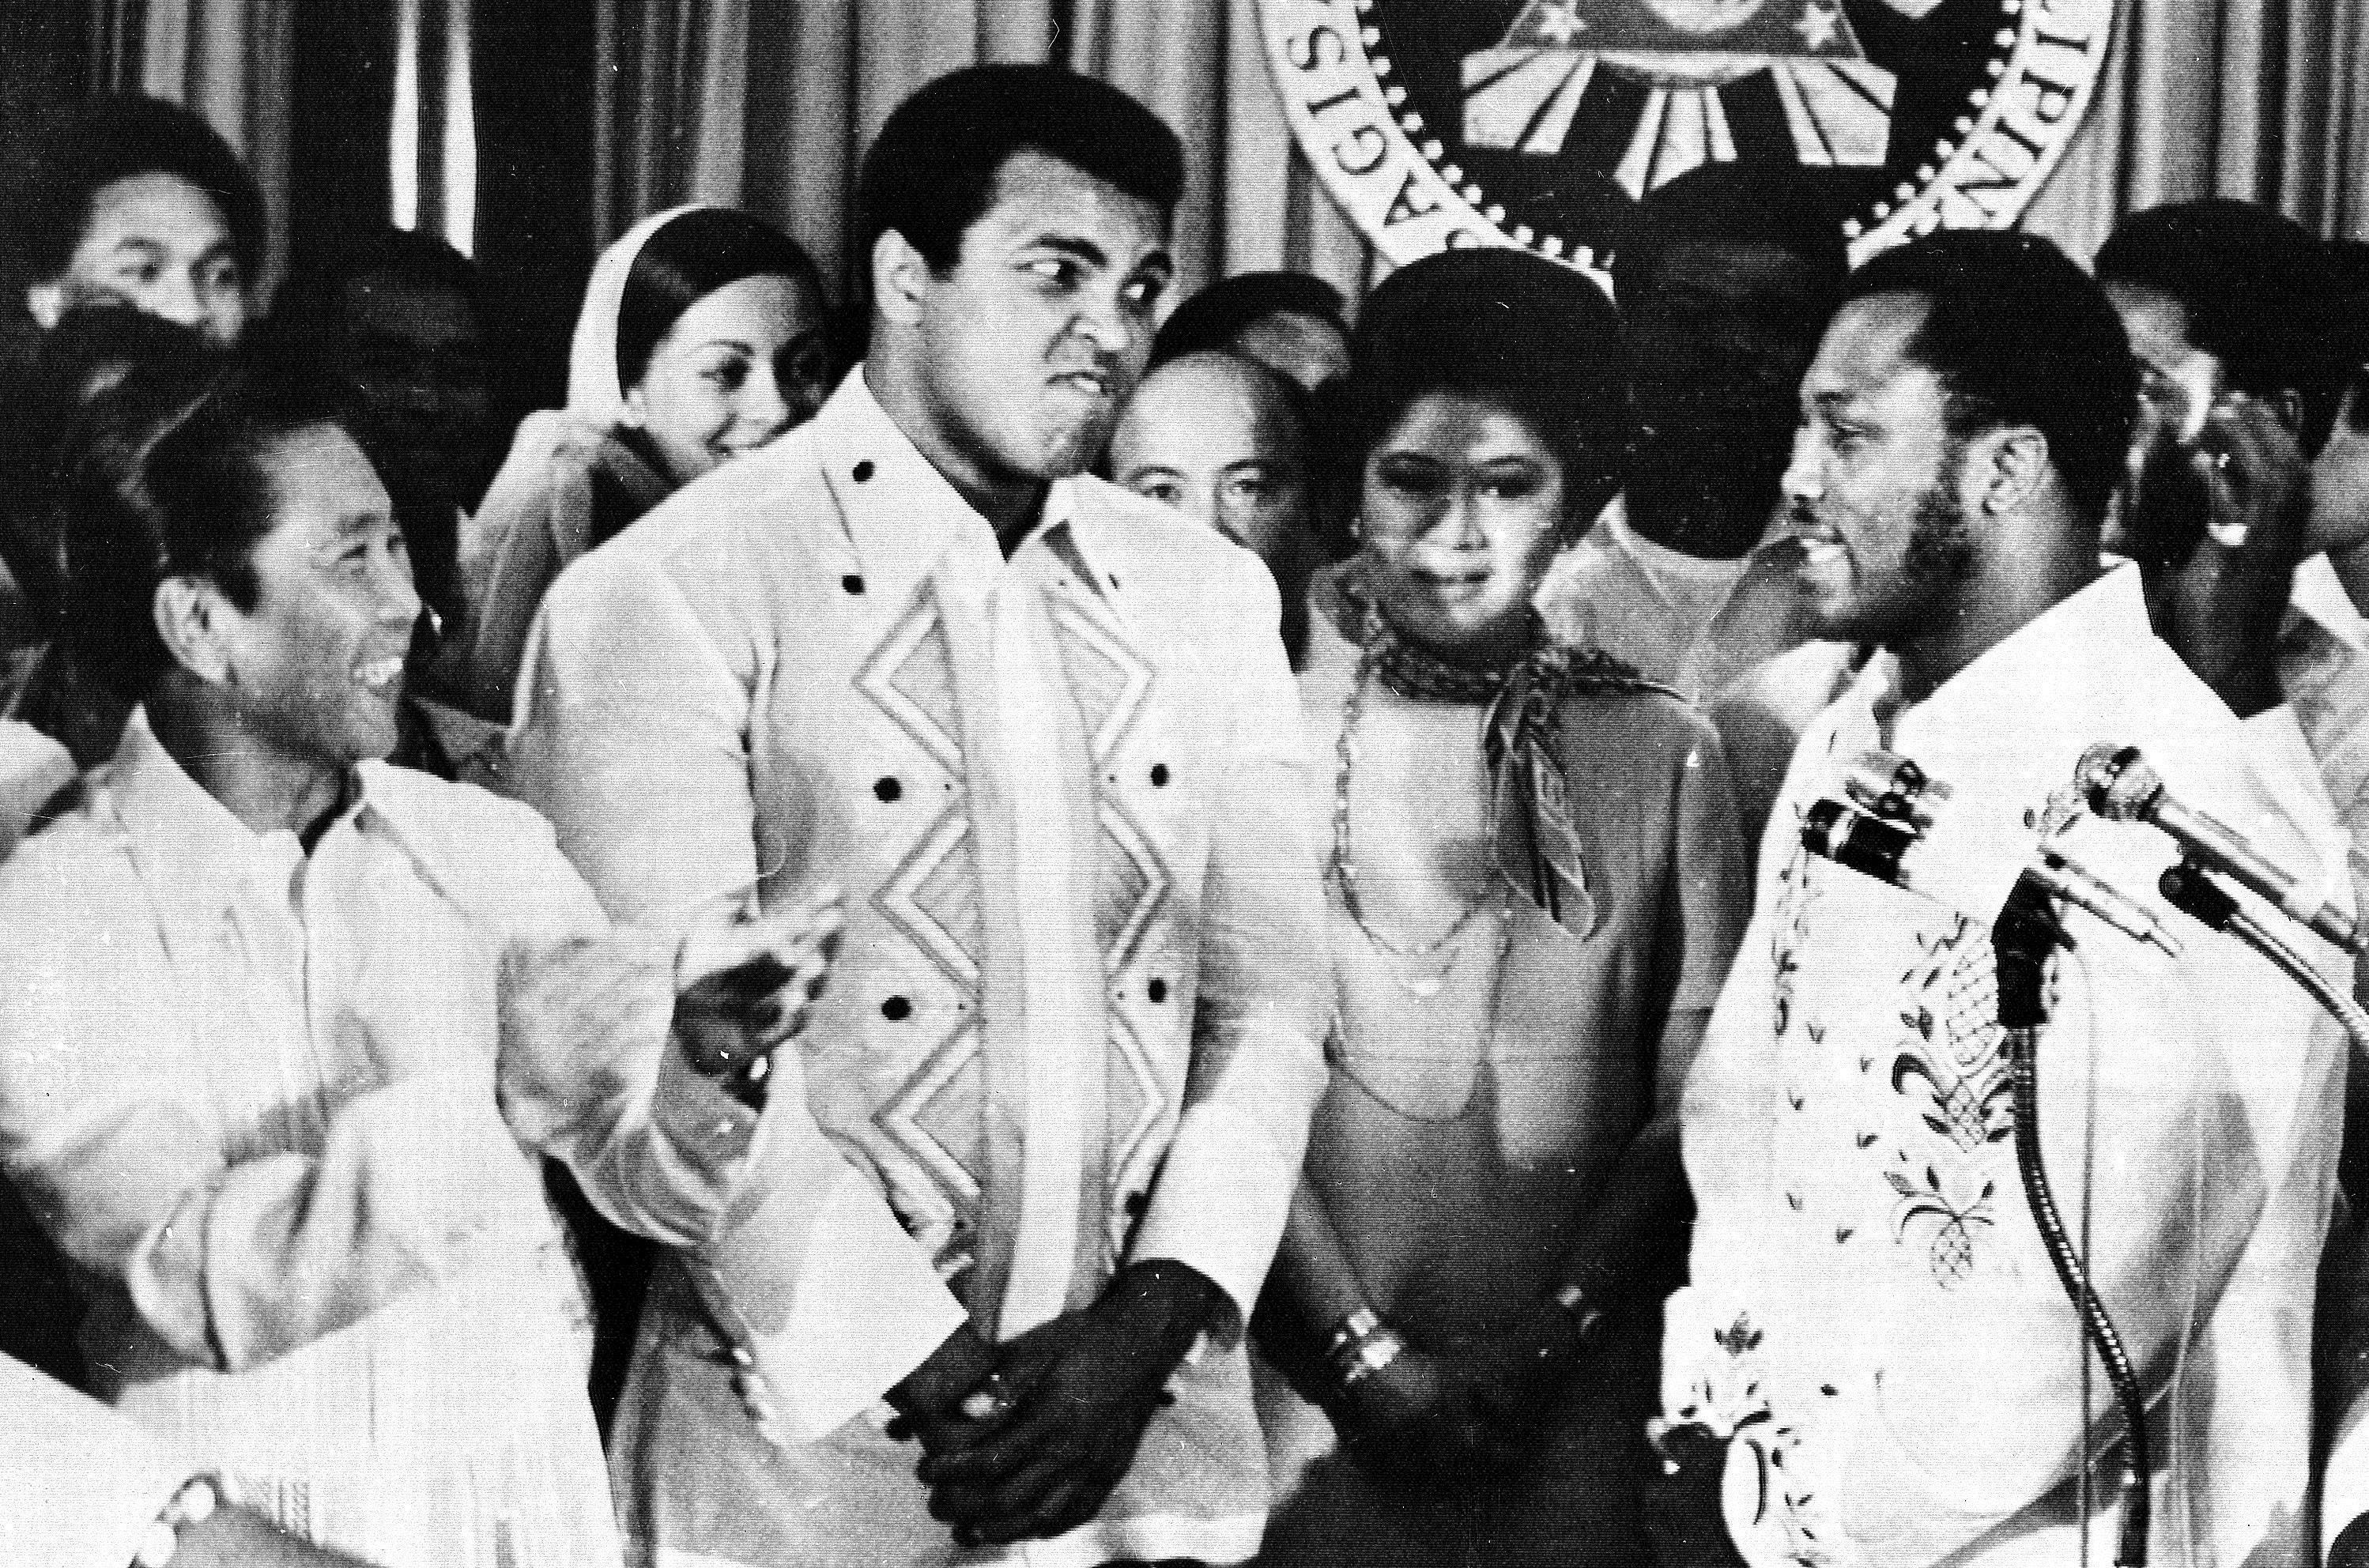 """""""It'll be a killa, a chilla, a thrilla, when I get the Gorilla in Manila!'' was Ali's pre-fight proclamation in the build-up to his stirring 1975 triumph against Frazier in the """"Thrilla in Manila,'' the third and final bout in their compelling trilogy."""